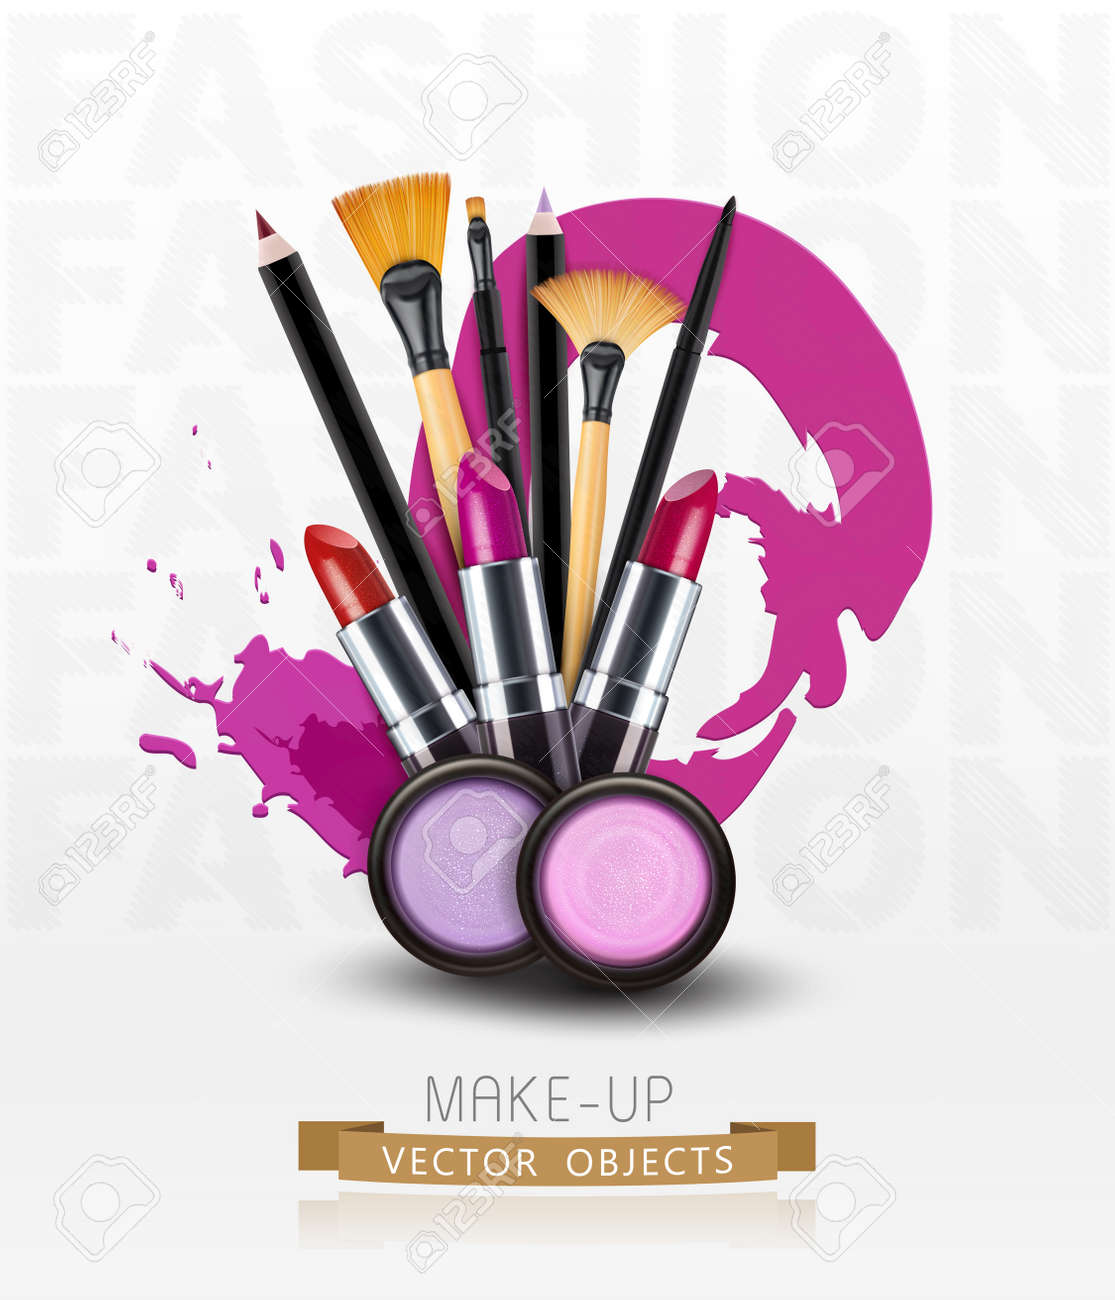 Vector Background With Cosmetics And Make Up Objects Flyer